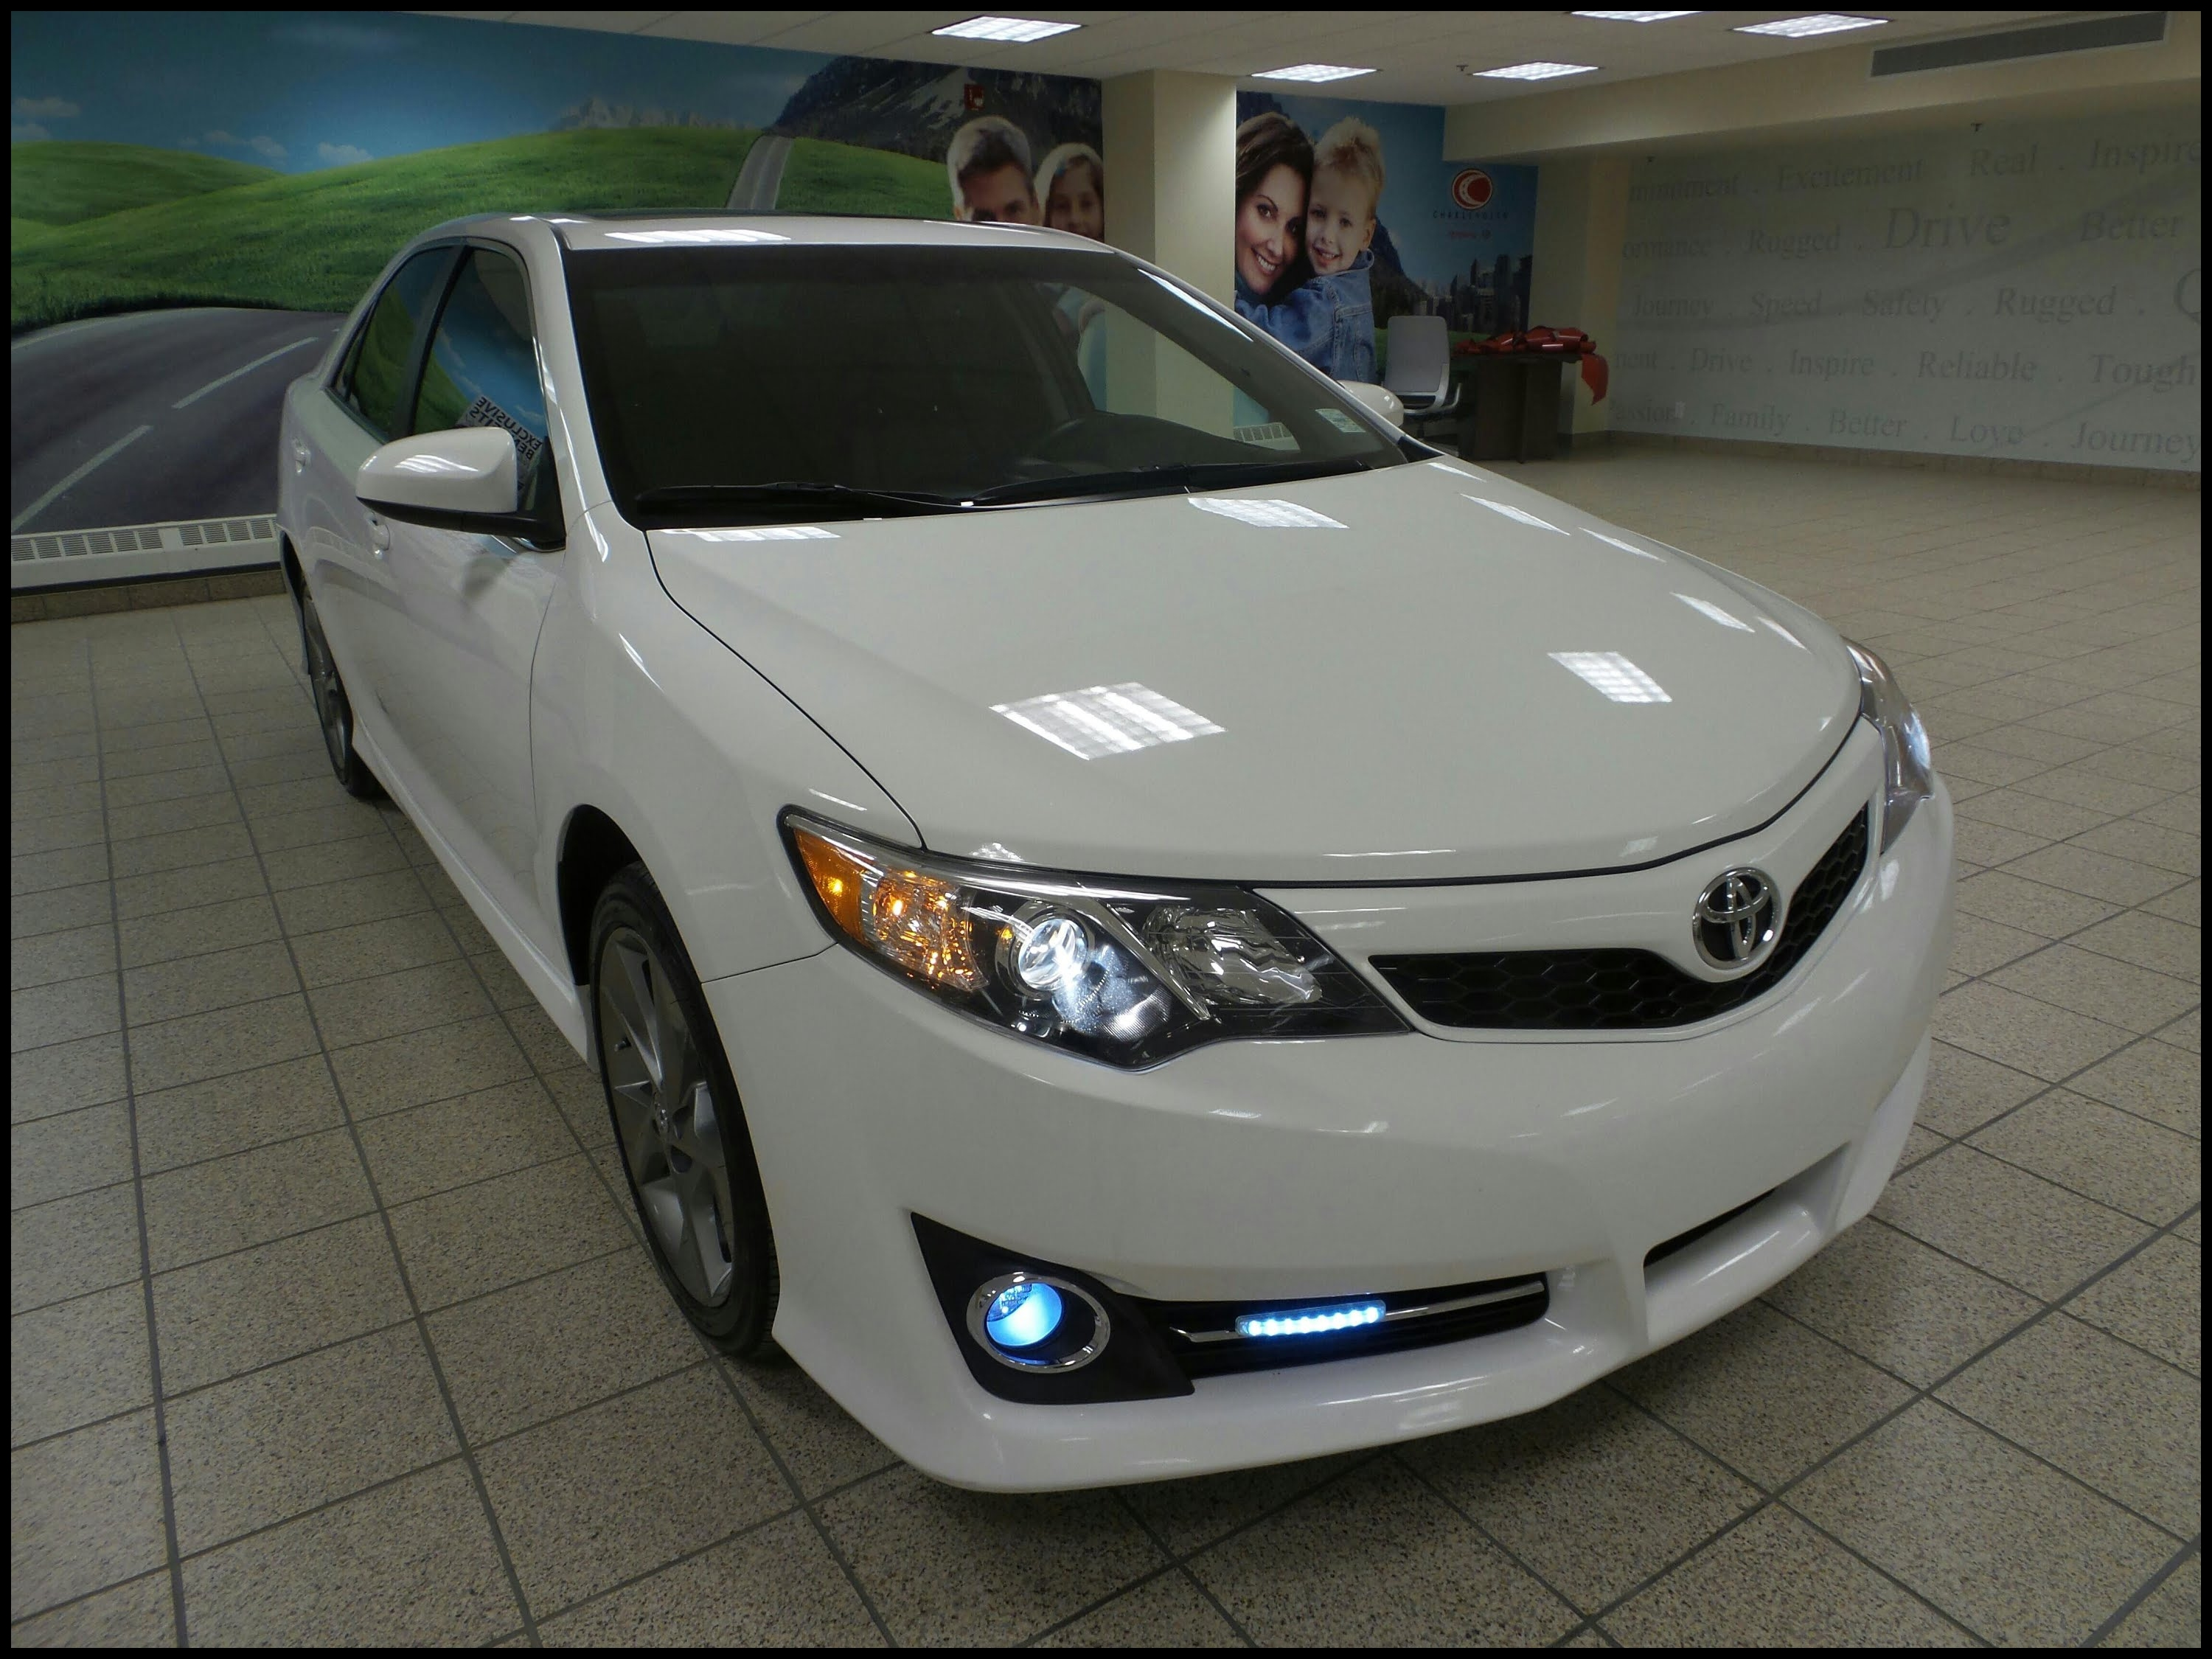 toyota Camry 2014 Near Me 2014 toyota Camry Pricing Ratings Reviews Release Date and Specs